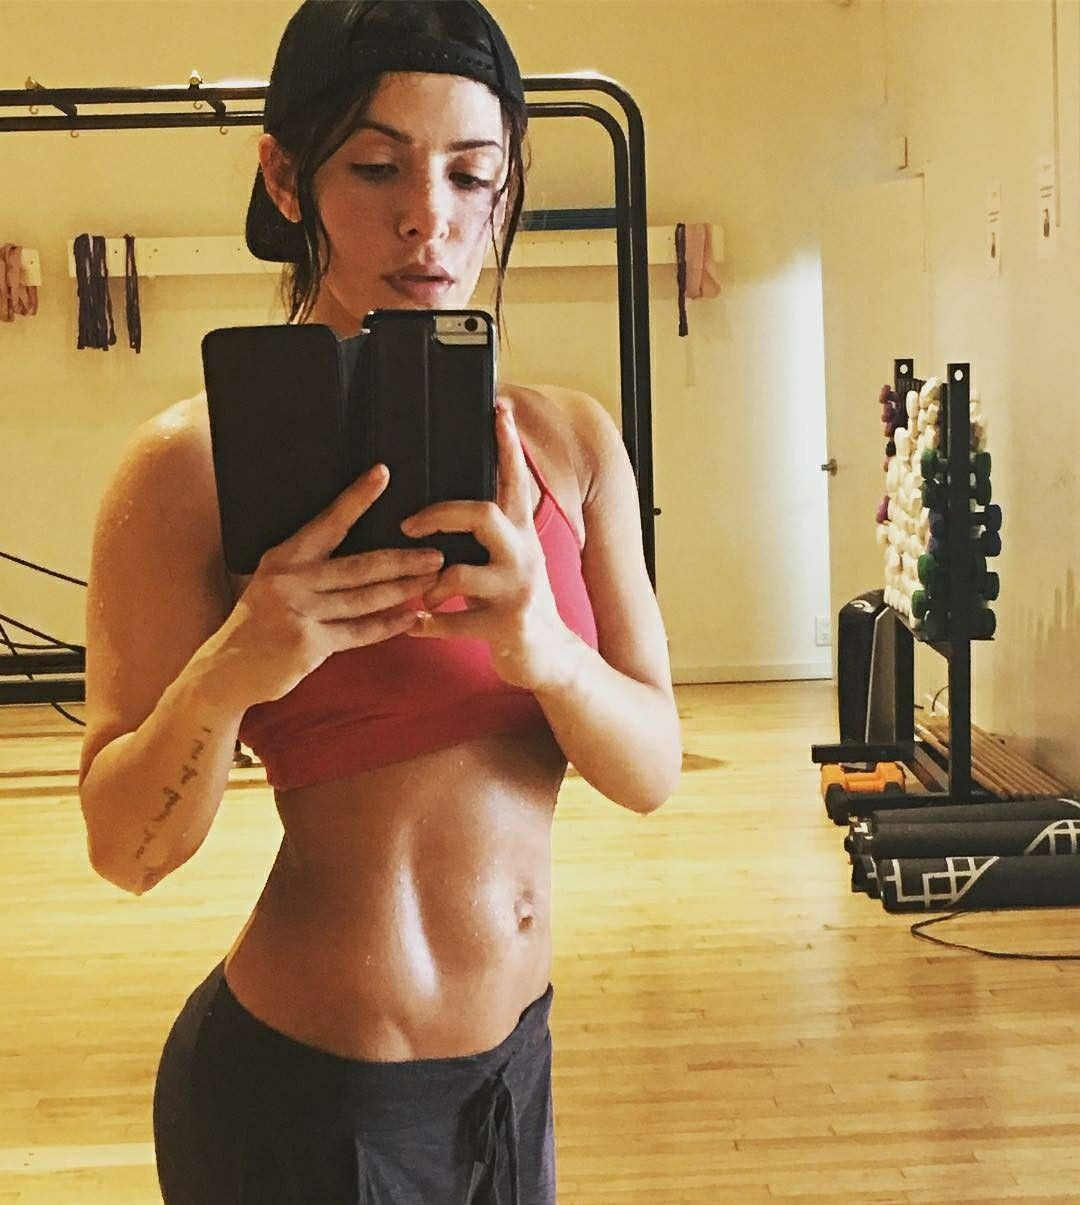 Selfie Sarah Shahi naked (15 foto and video), Pussy, Sideboobs, Boobs, underwear 2020